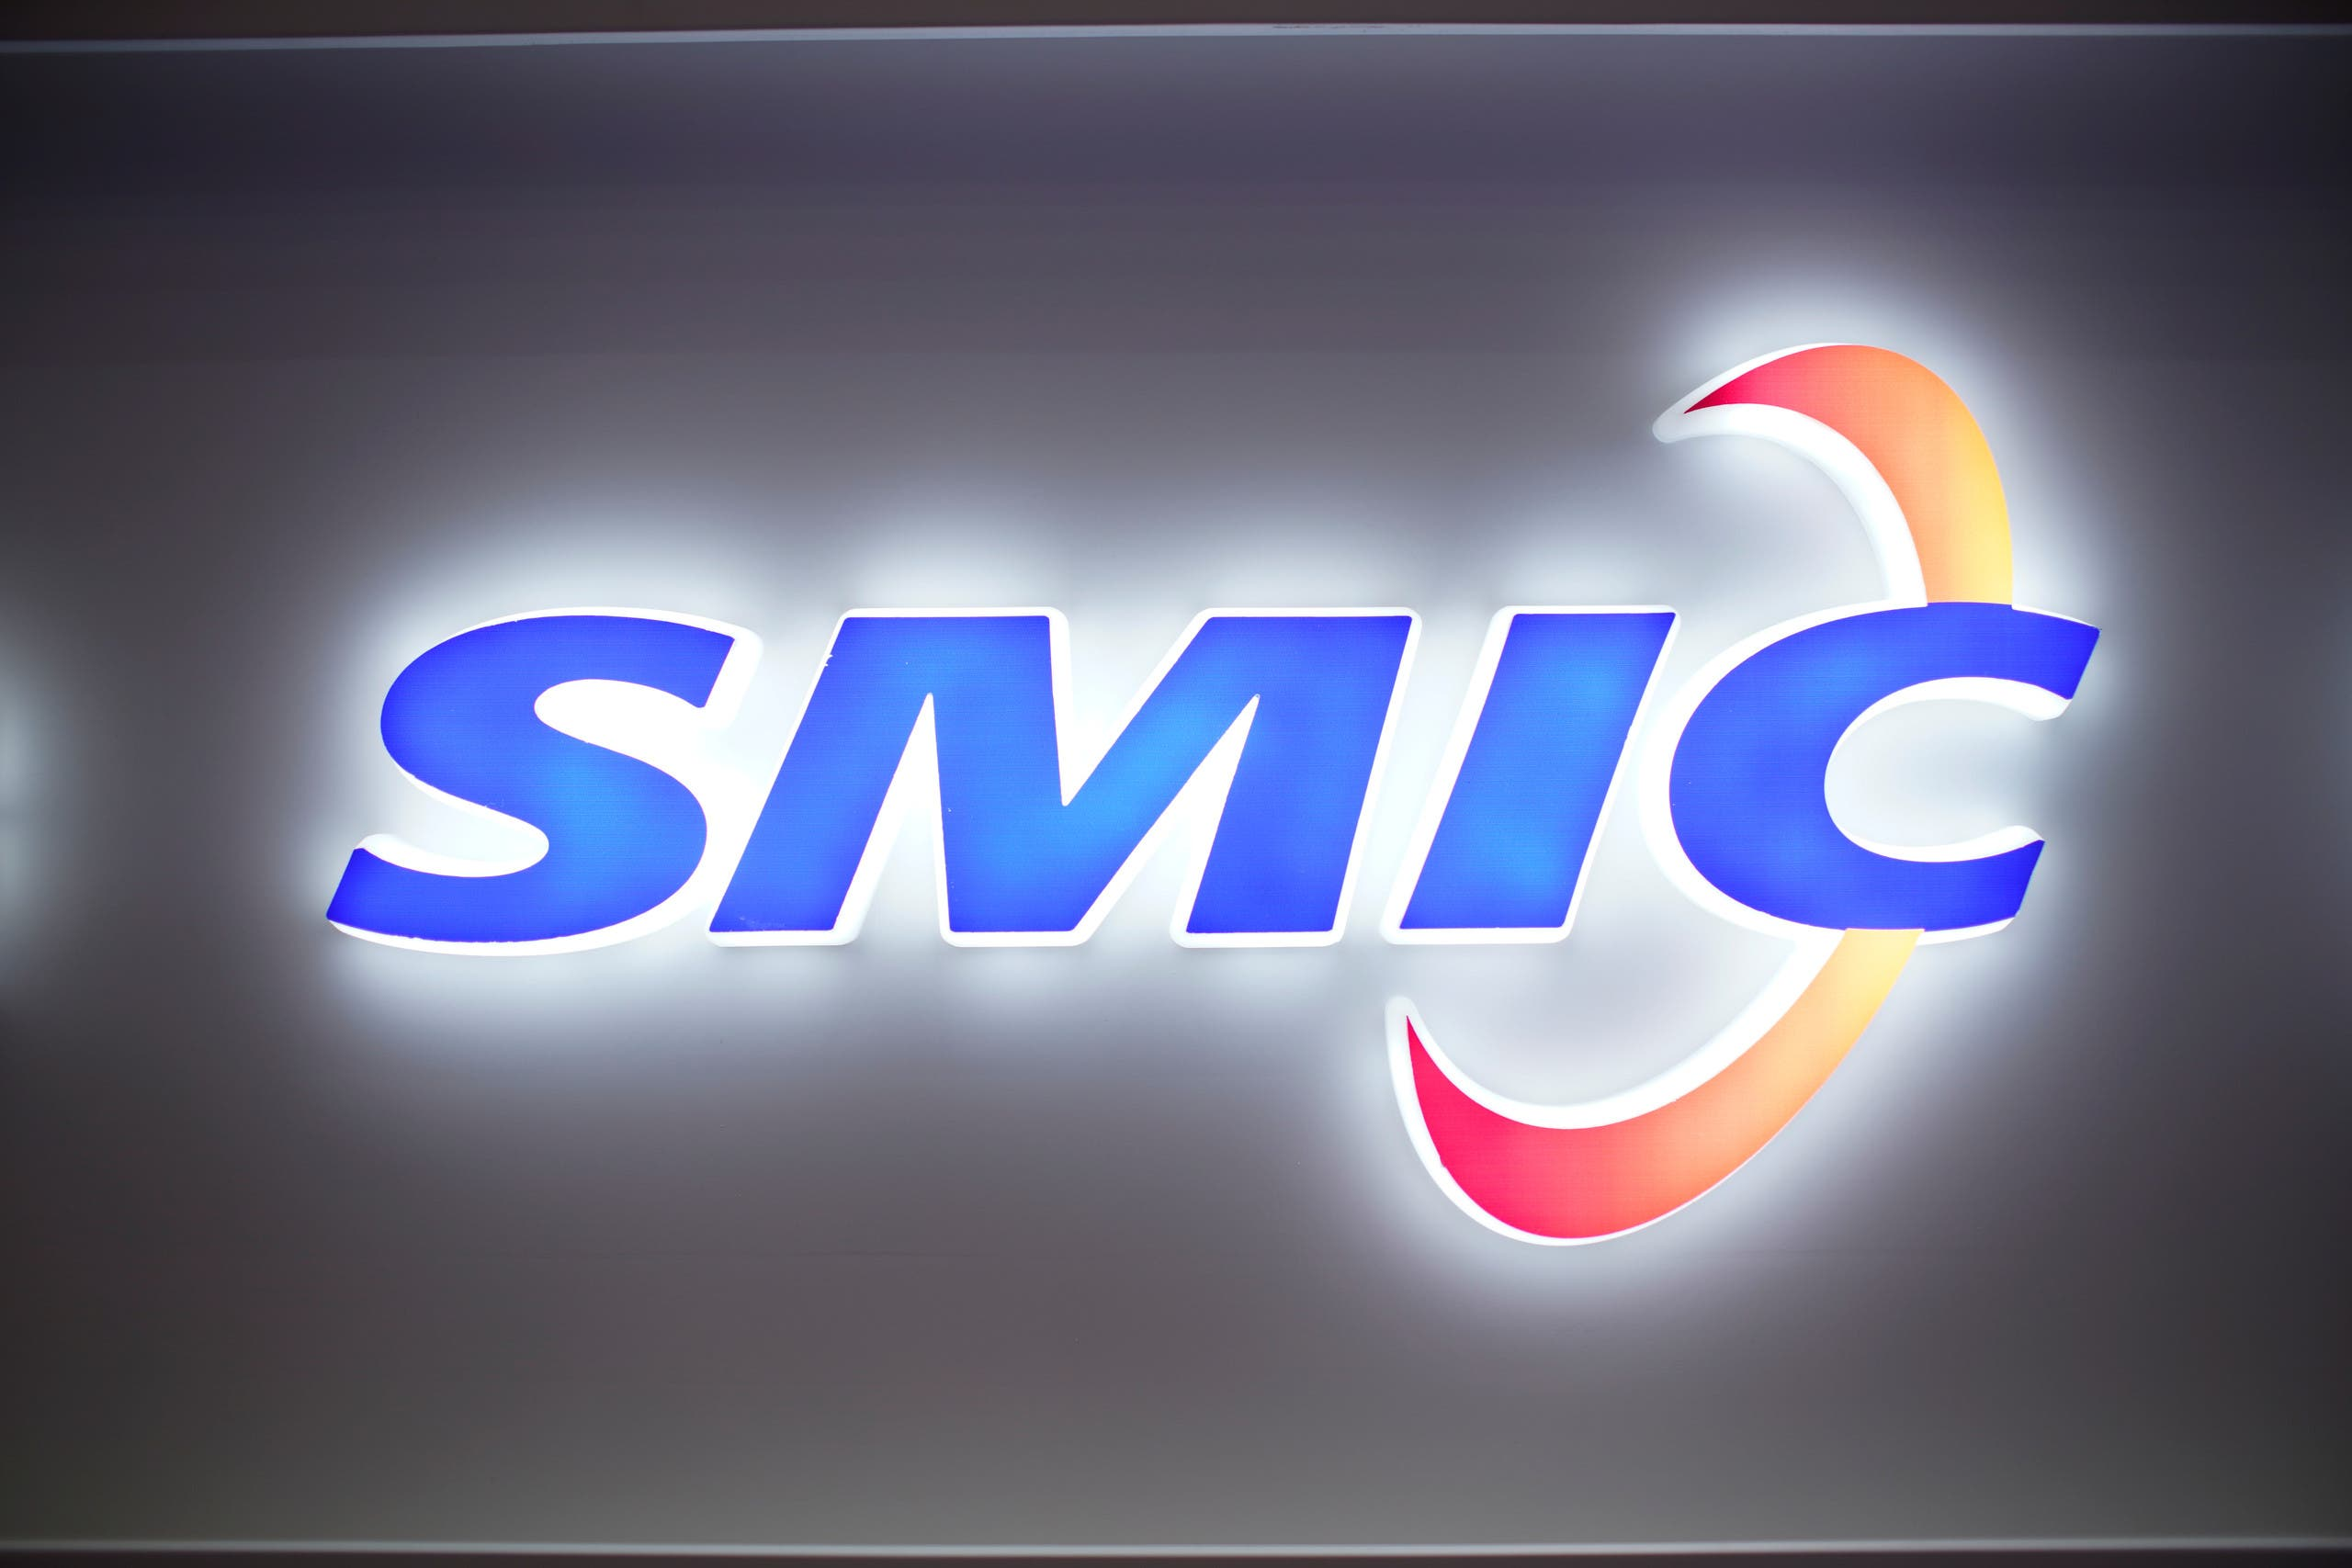 A logo of Semiconductor Manufacturing International Corporation (SMIC) taken on October 14, 2020. SMIC was one of the dozens of Chinese companies added to a trade blacklist by the US earlier this month. (Reuters)